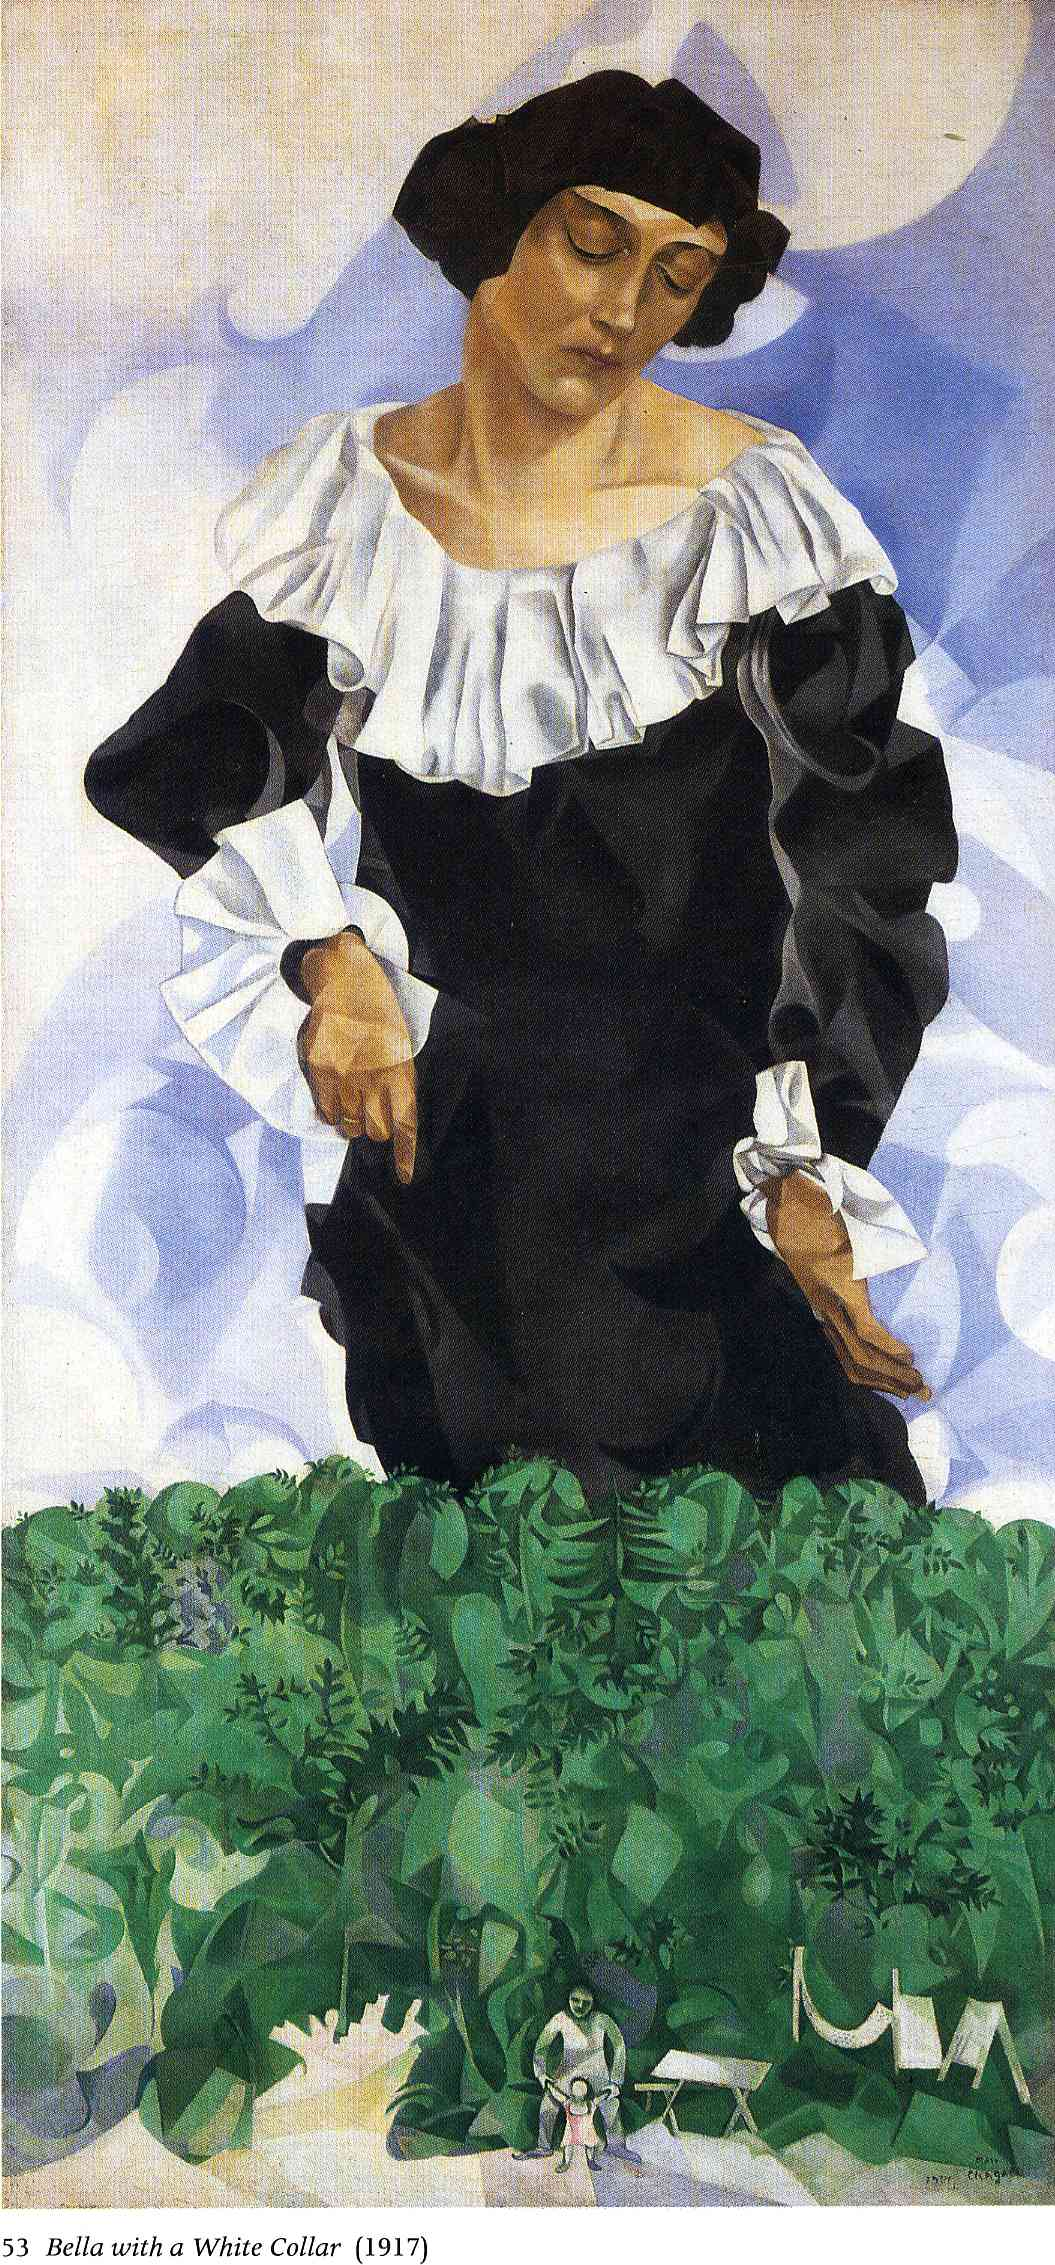 Marc Chagall,  Bella with a White Collar,  1917 (Image Courtesy of  WikiArt )